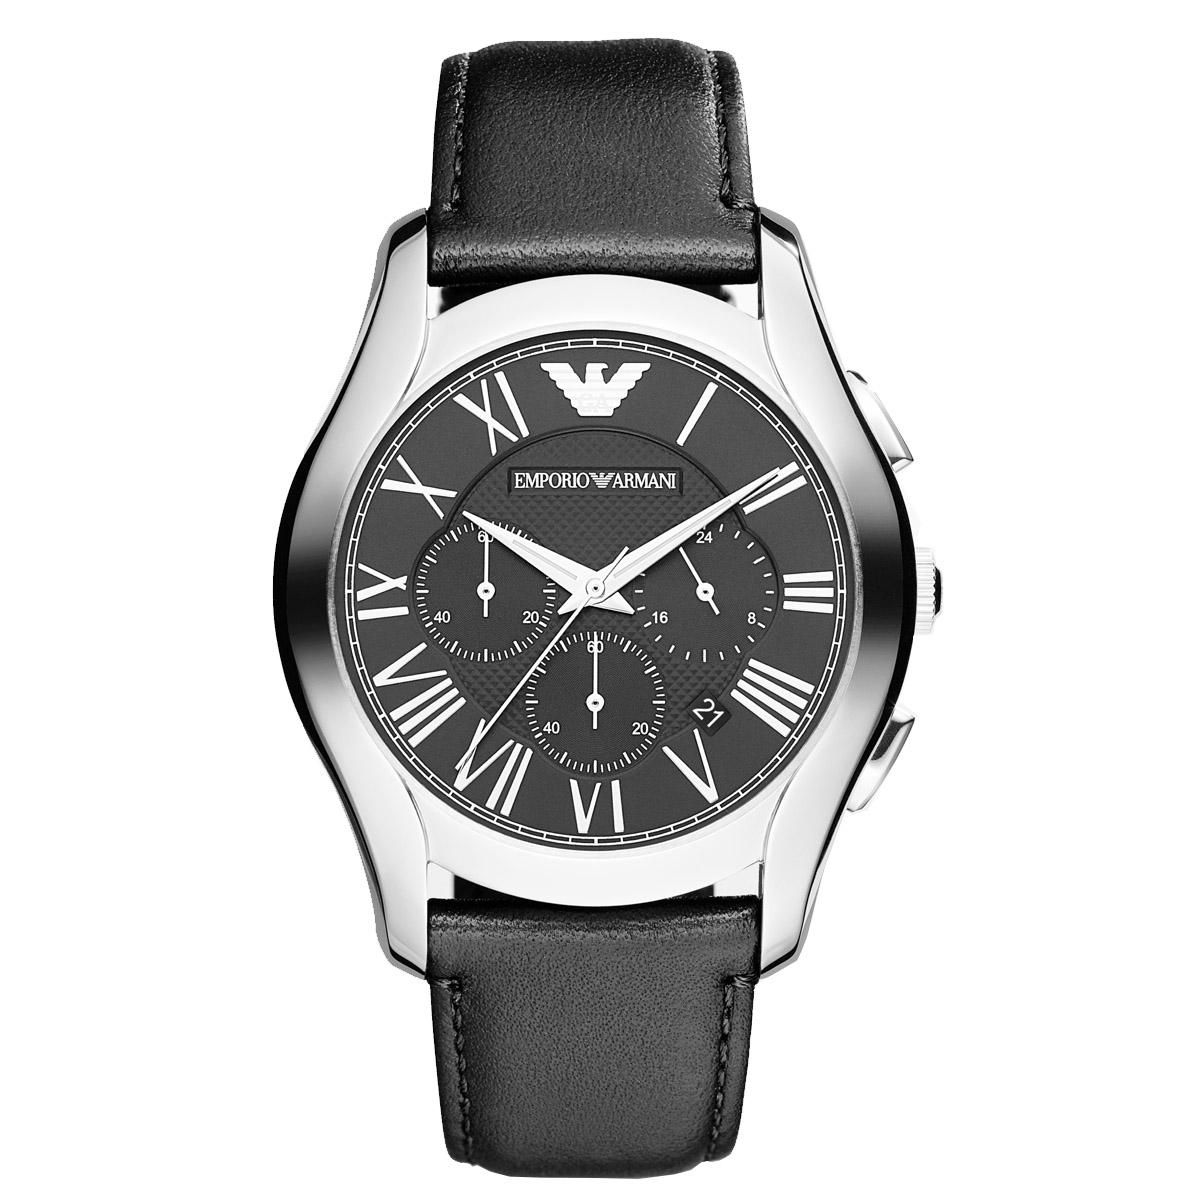 Emporio Armani Emporio Armani Valente Chronograph Black Stainless-Steel Case Leather Strap Mens NWT + Warranty AR1700